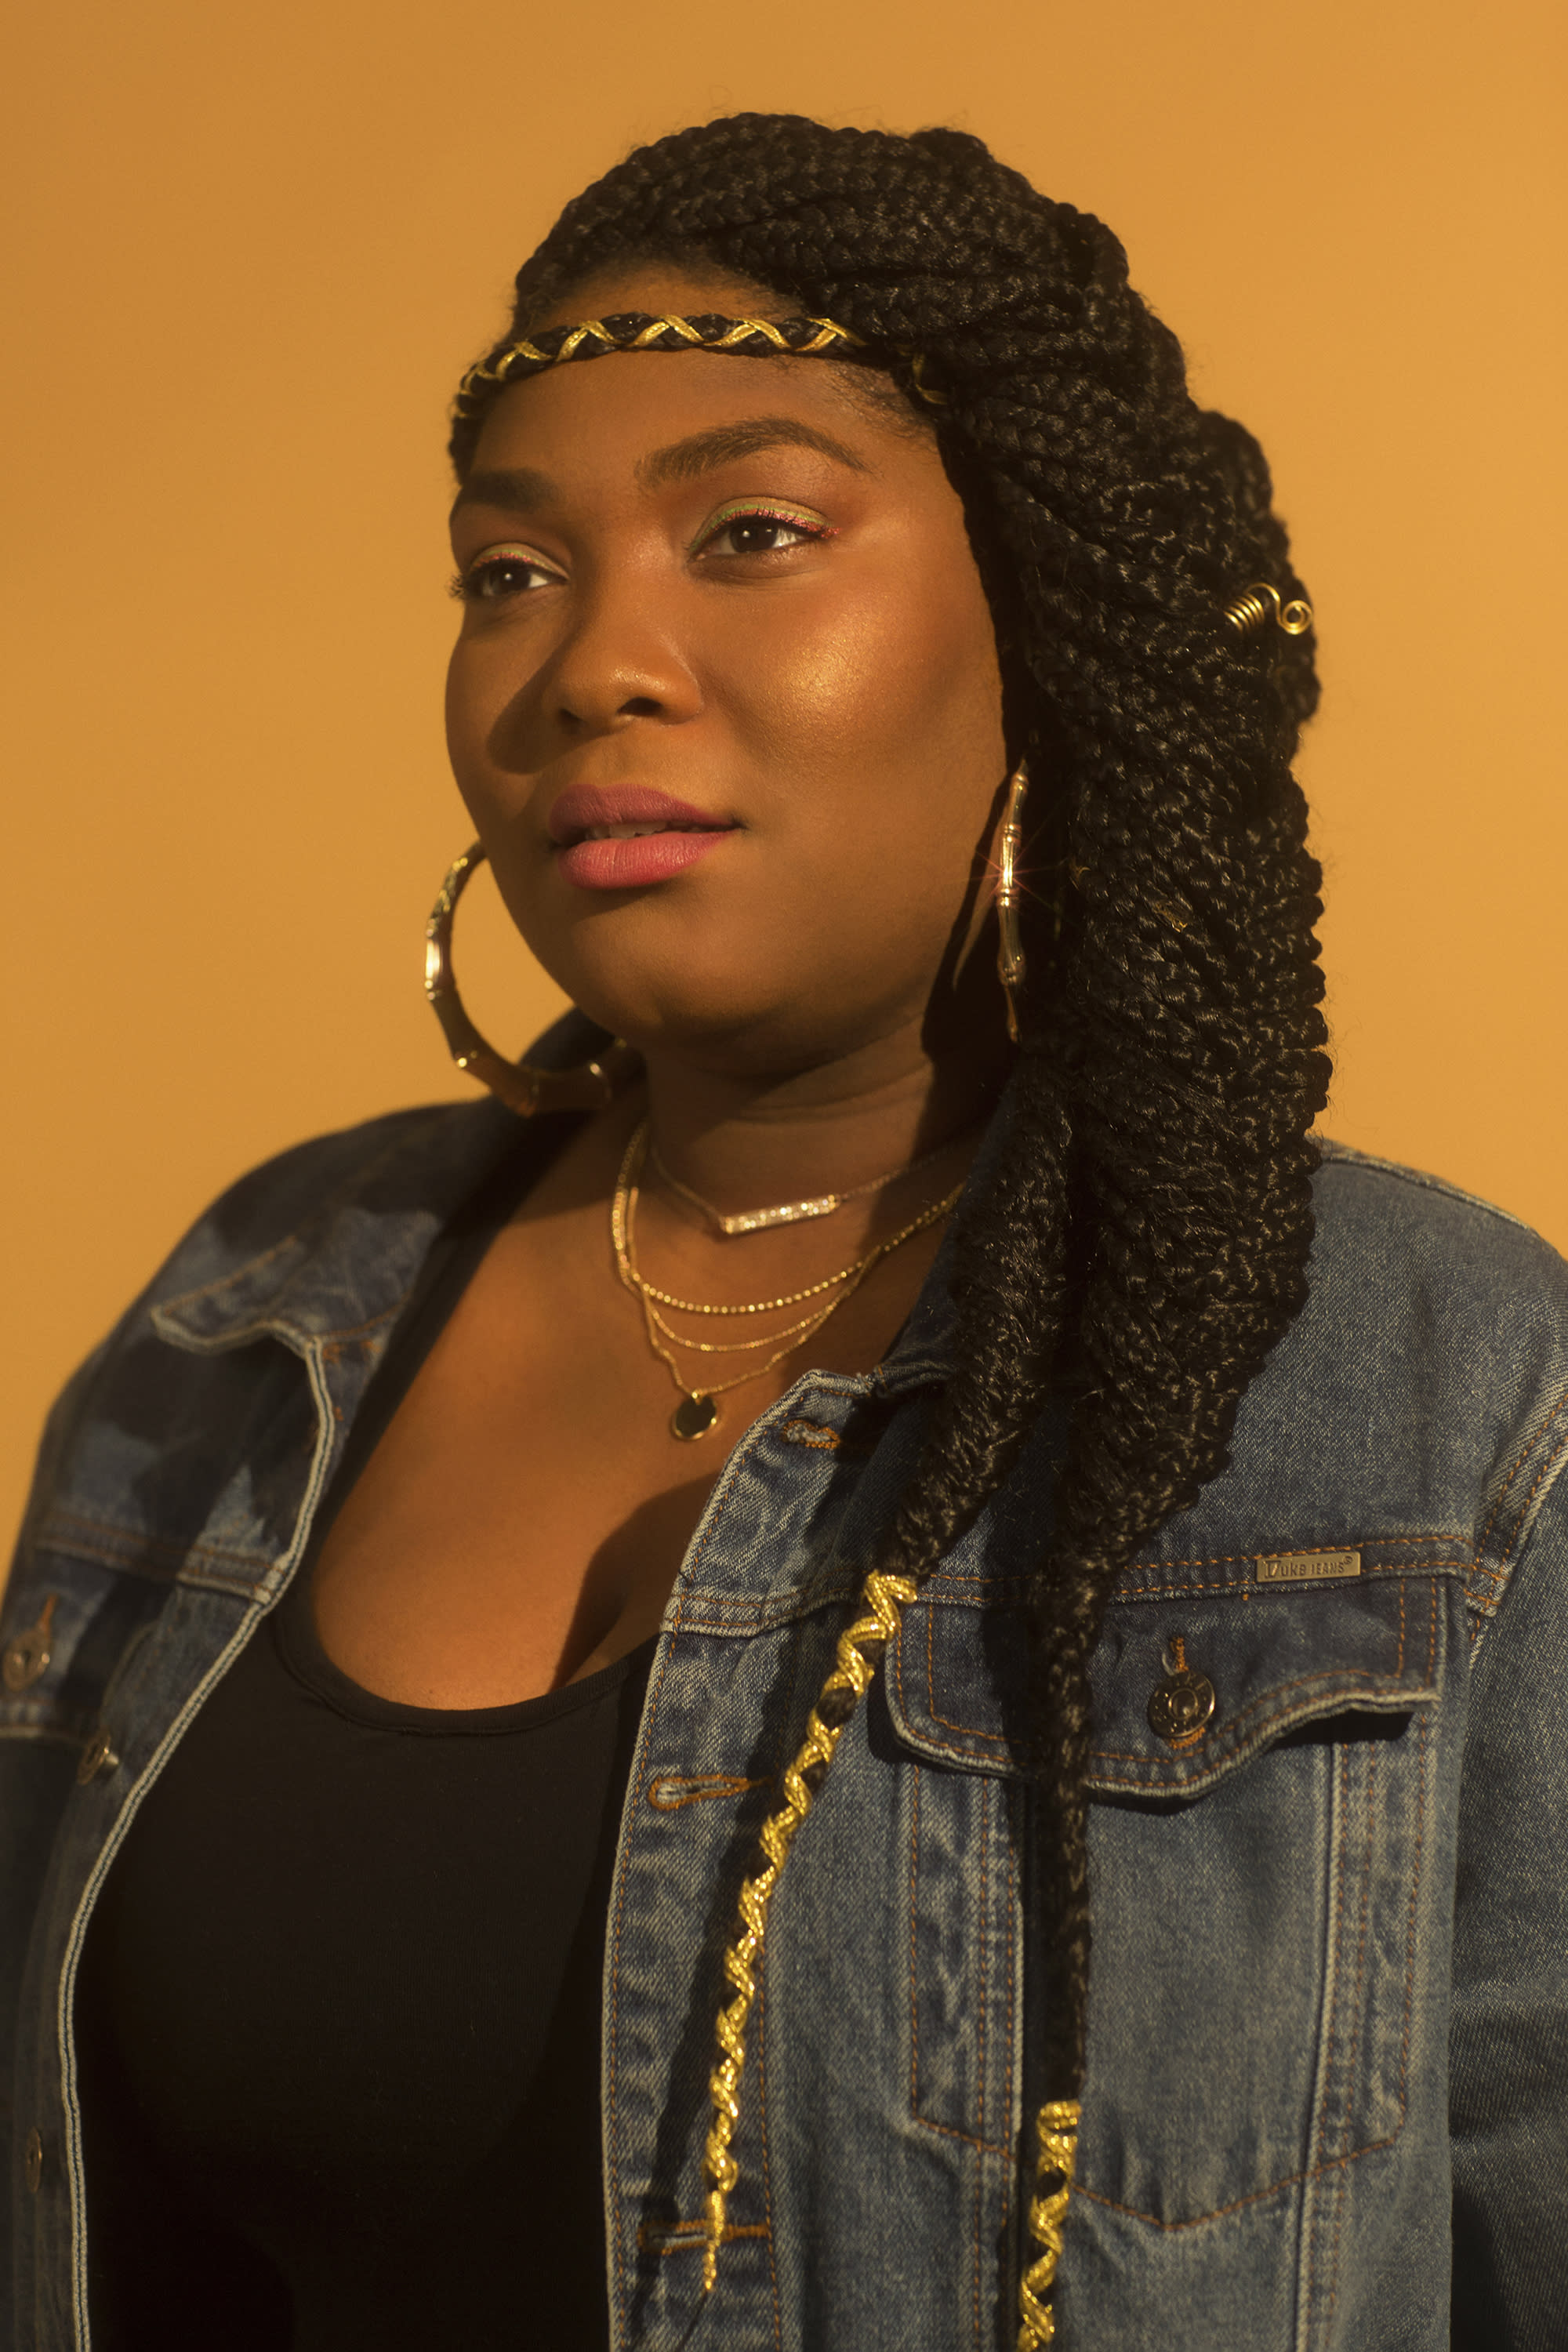 DJ Tiff McFierce embraces her natural hair, and she'll wear it however she chooses. (Photo: Natalia Mantini)